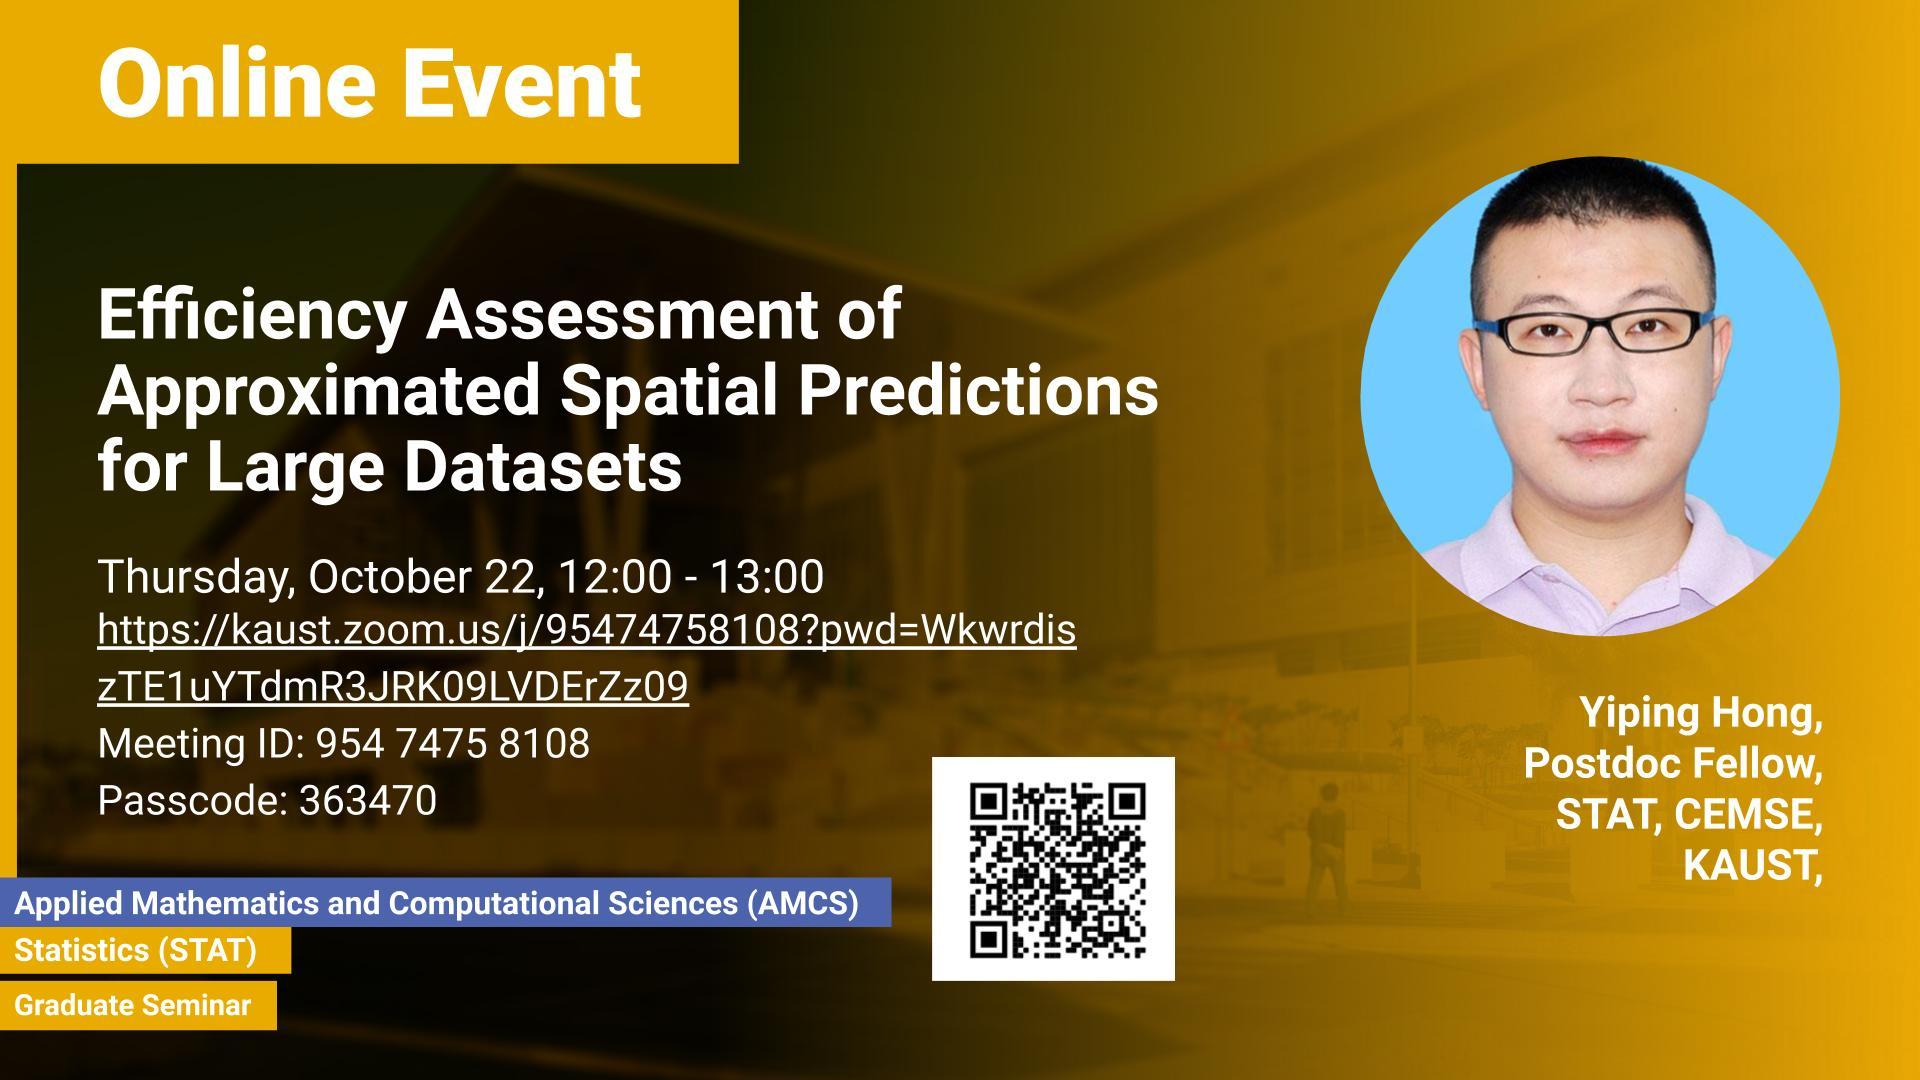 KAUST-CEMSE-STAT-AMCS-Graduate Seminar-yiping-Hong-Efficiency Assessment of Approximated Spatial Predictions for Large Datasets